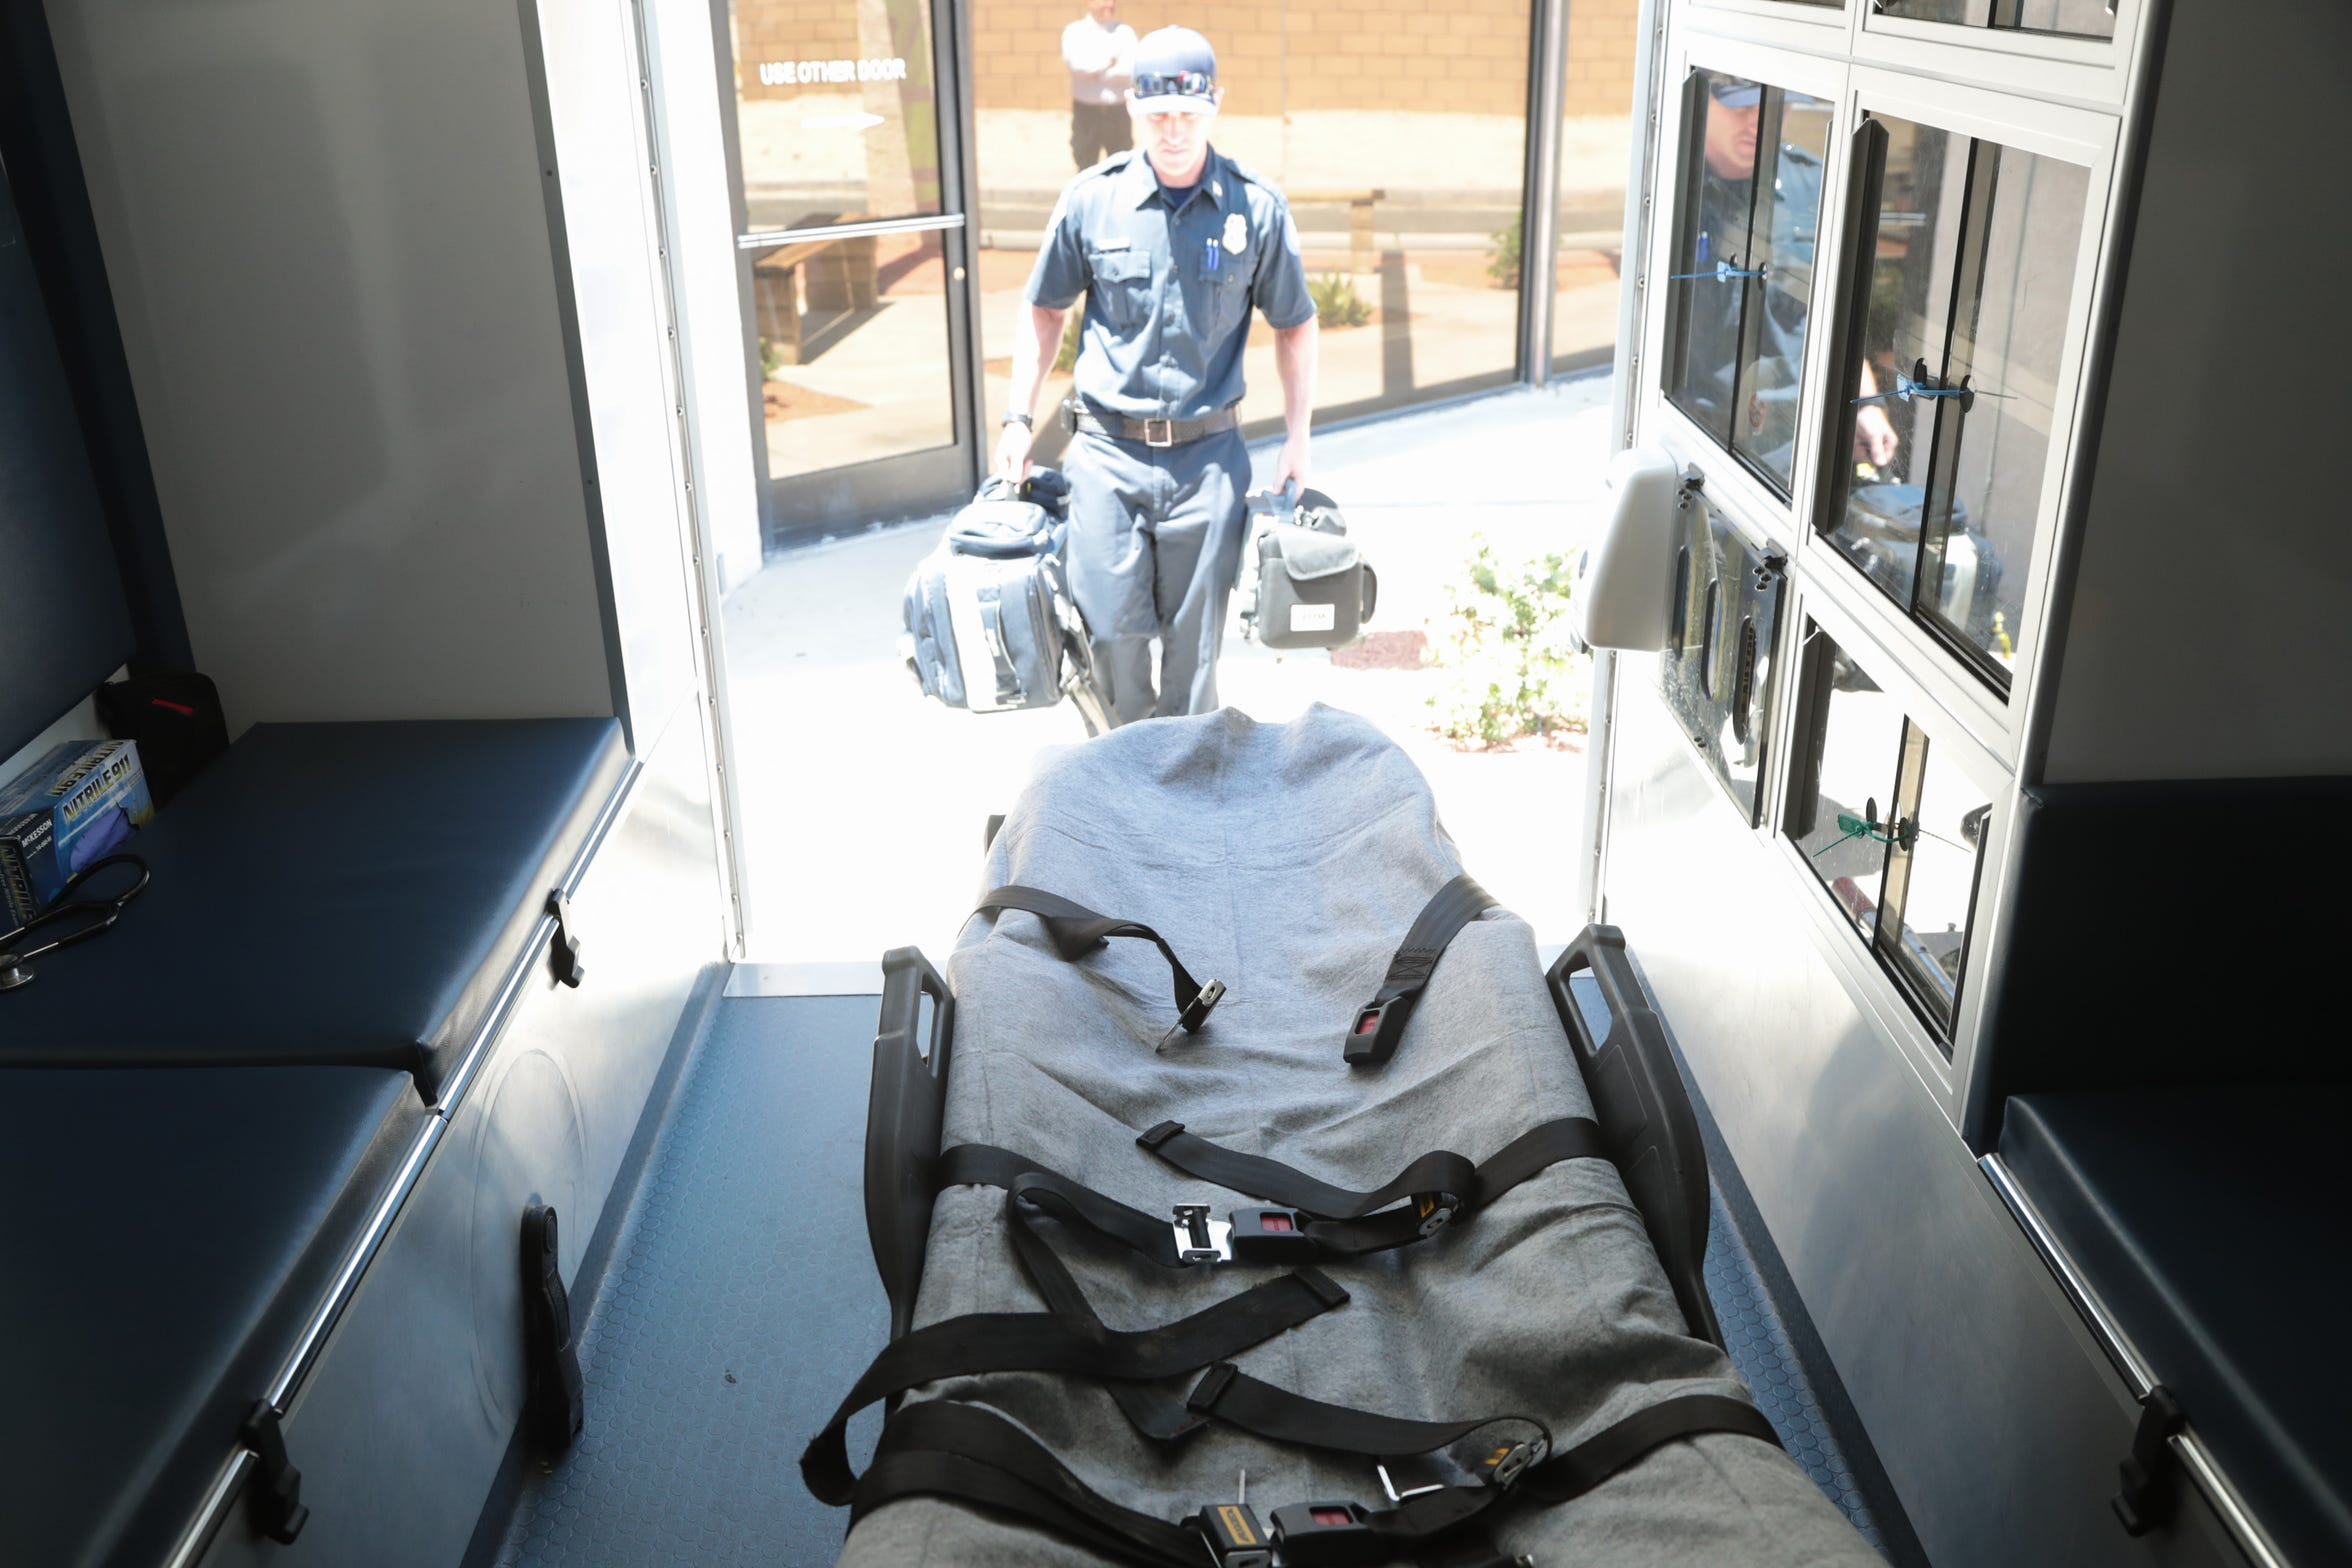 Zach Borba carries equipment into an American Medical Response ambulance at the start of his shift, Palm Springs, Calif., May 22, 2019.